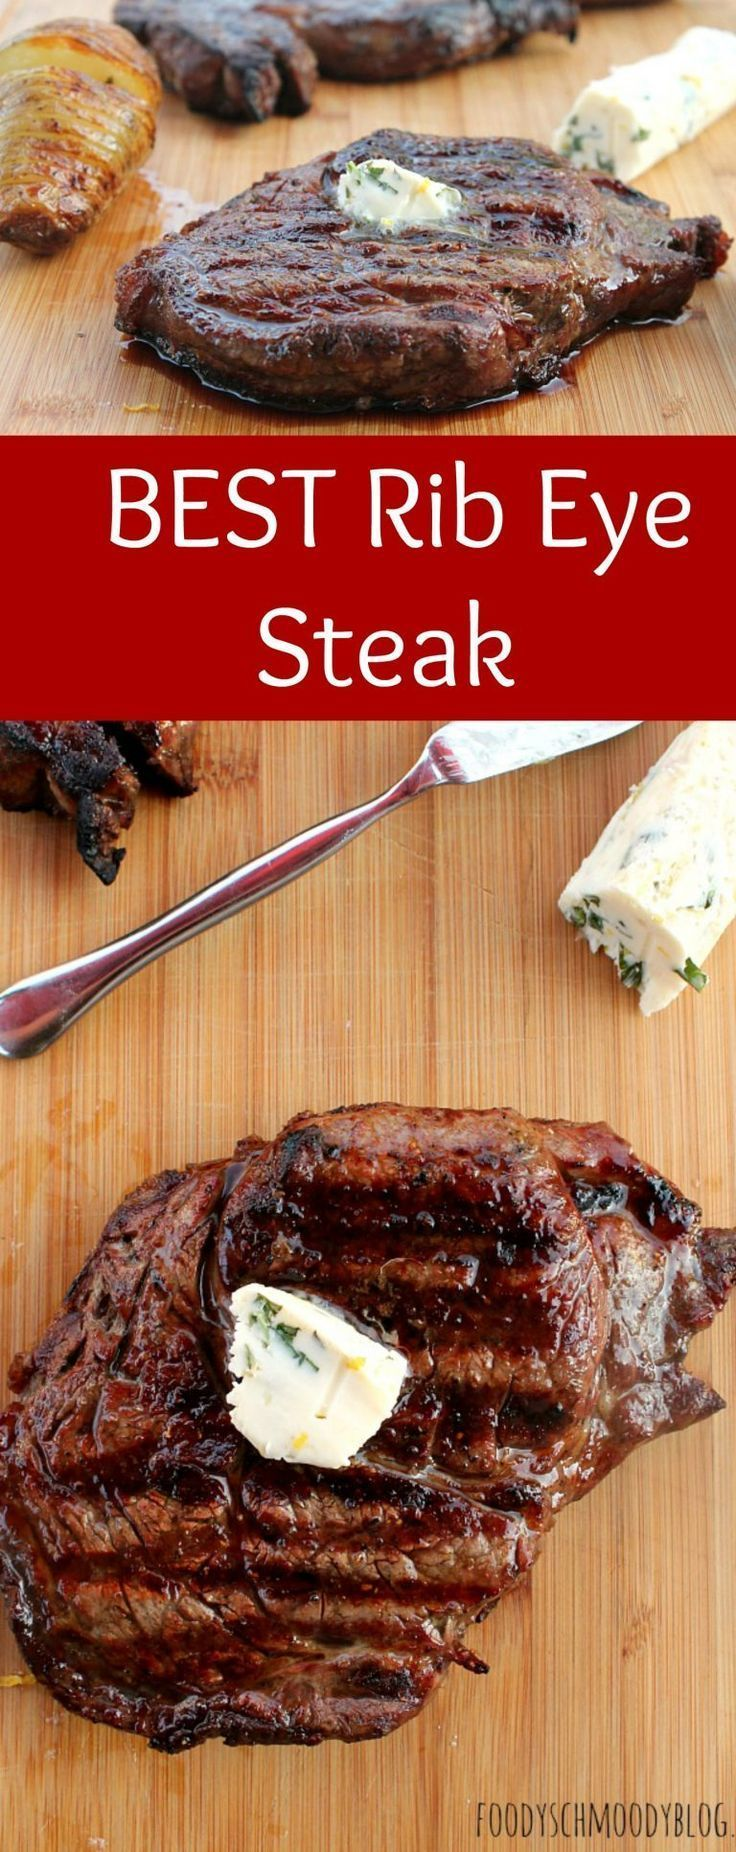 This really is my BEST Rib eye Steak recipe. It's tender and juicy and full of flavor! Just a few easy ingredients and a grill is all you need for this one and only needed Rib Eye Steak Recipe!